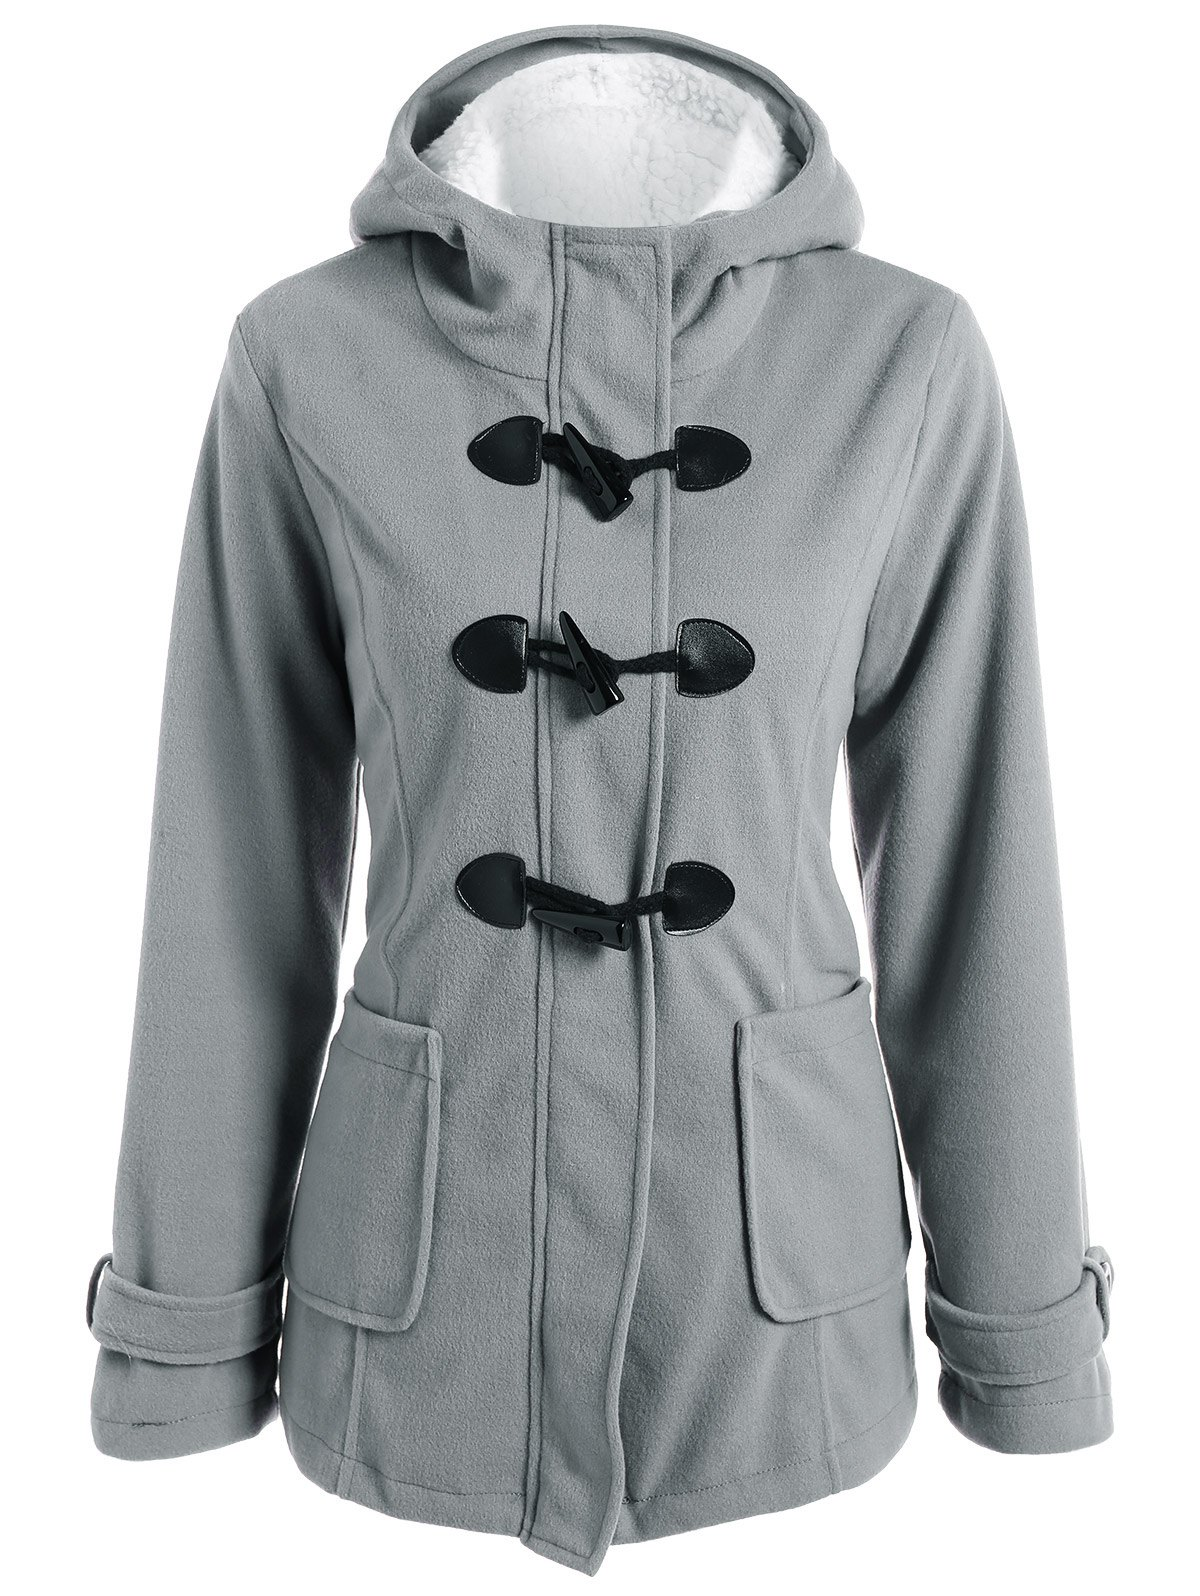 Shop Zip Up Fleece Hooded Duffle Coat